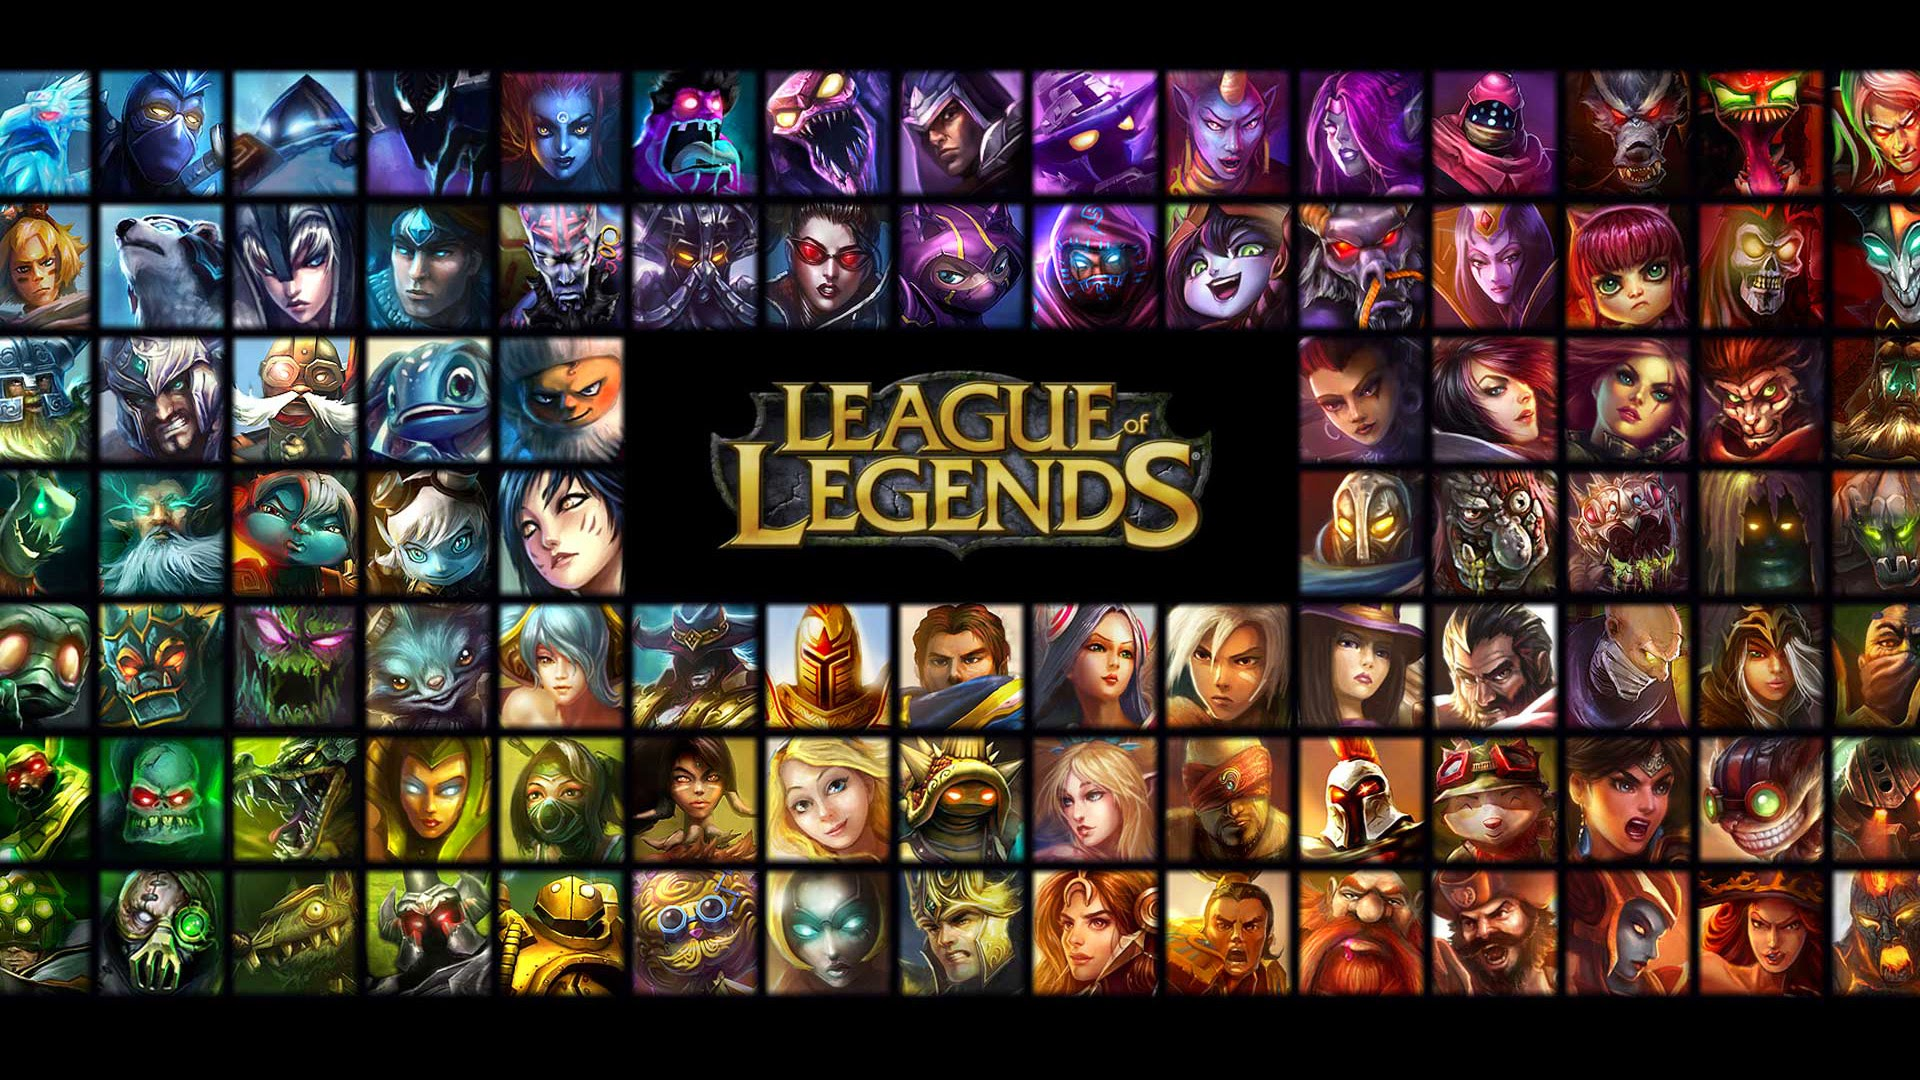 league of legends lol champion hd wallpaper 1920x1080 r9 1920x1080